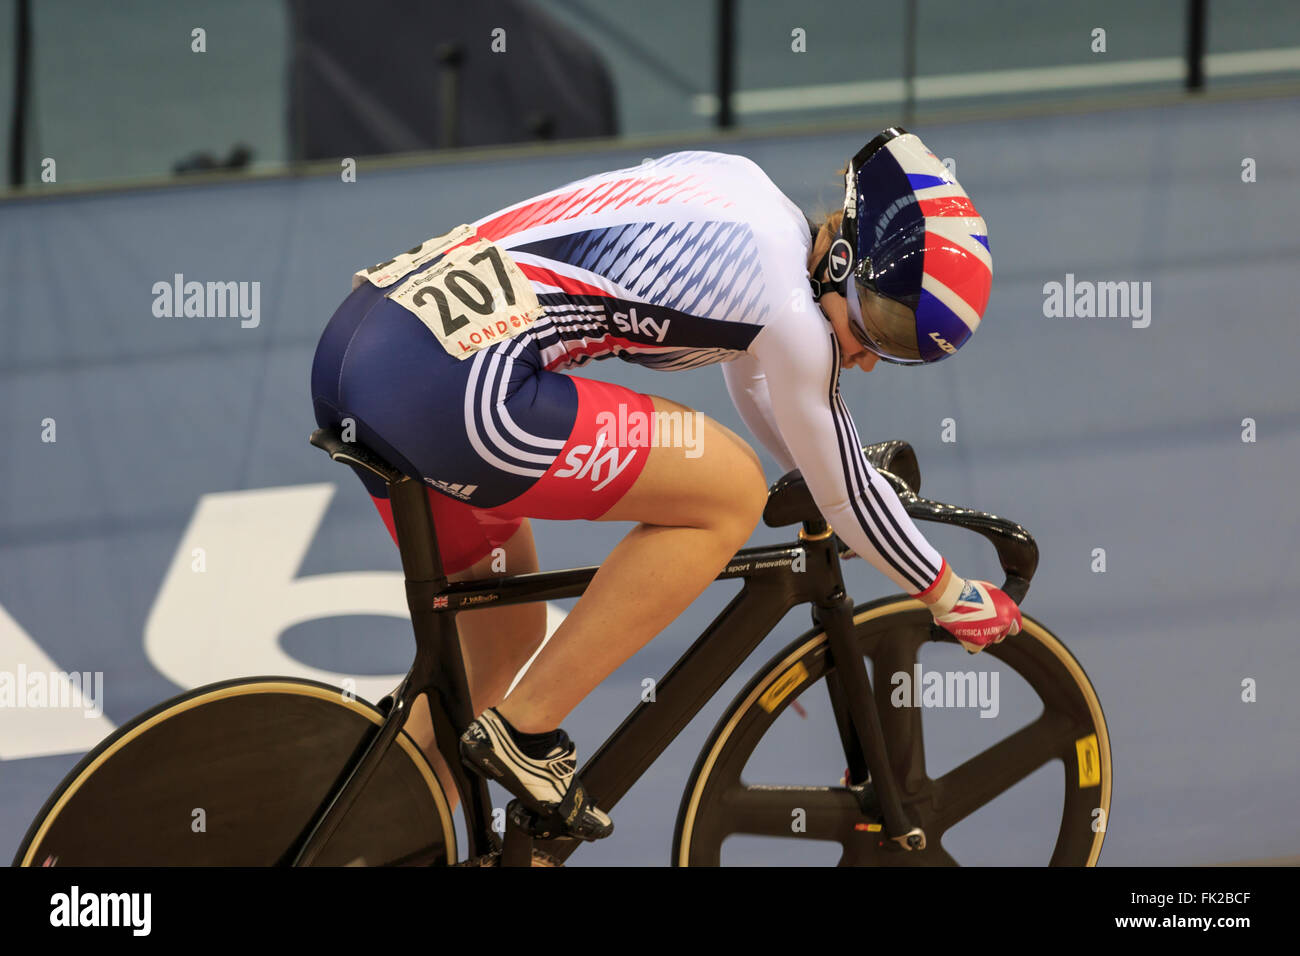 London, UK, 5 March 2016. UCI 2016 Track Cycling World Championships. Great Britain's Jess Varnish progressed - Stock Image